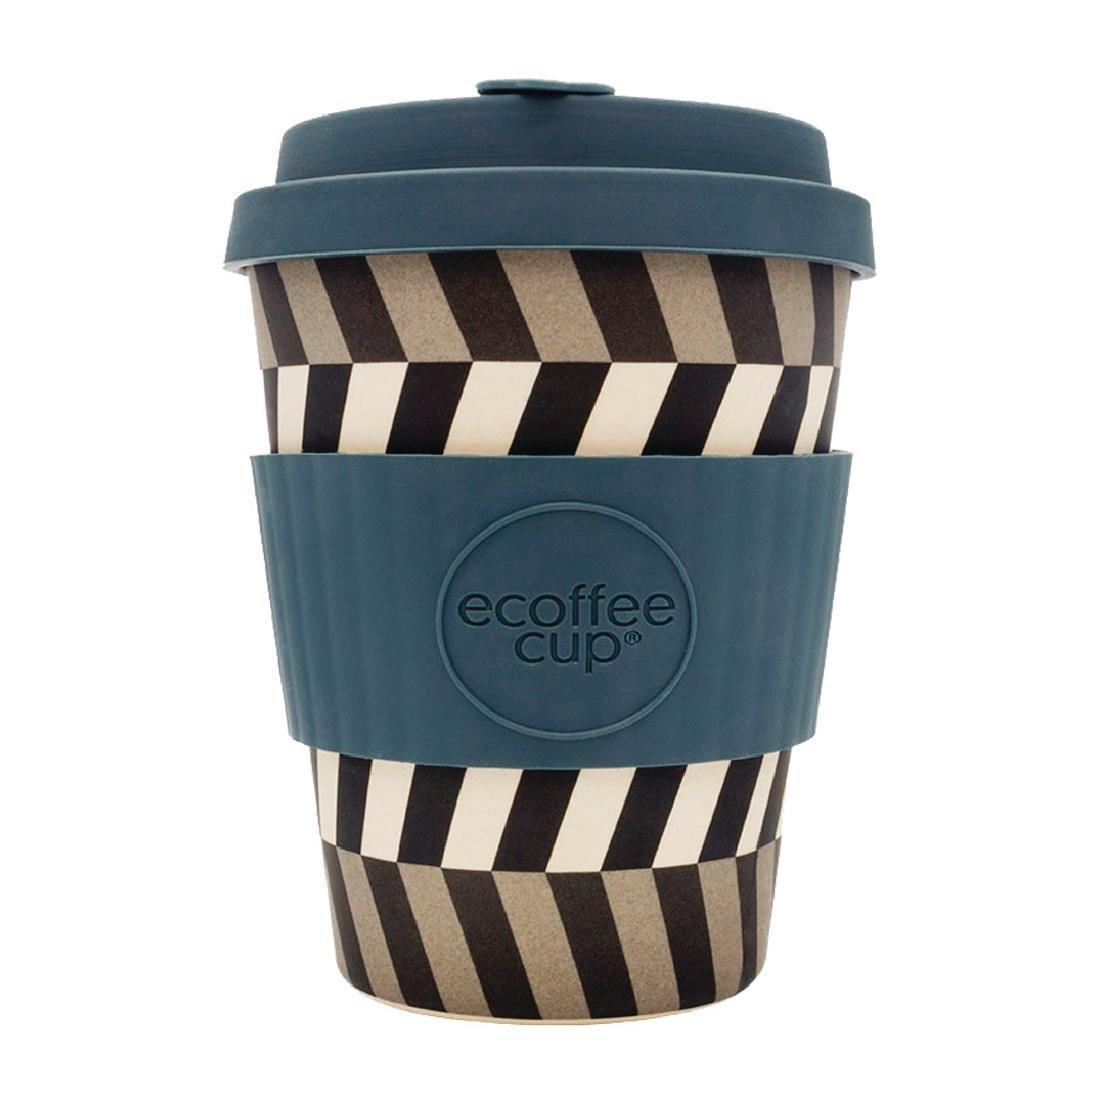 Ecoffee Cup Bamboo Reusable Coffee Cup Look Into My Eyes 12oz - Each - DY488